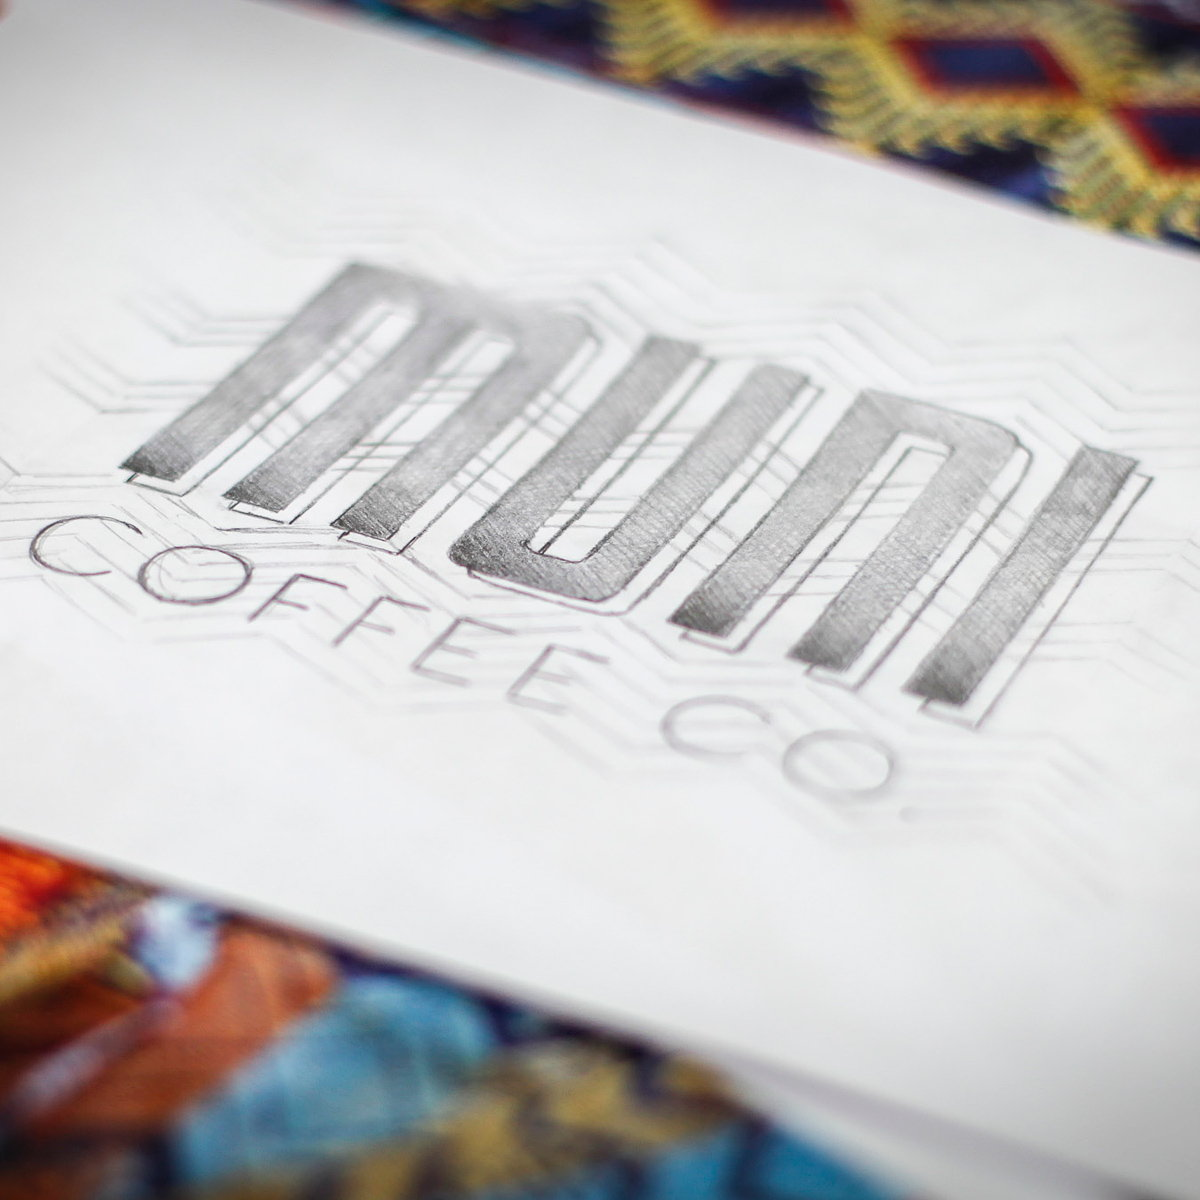 Crate47 Creates Branding for Muni Coffee Company